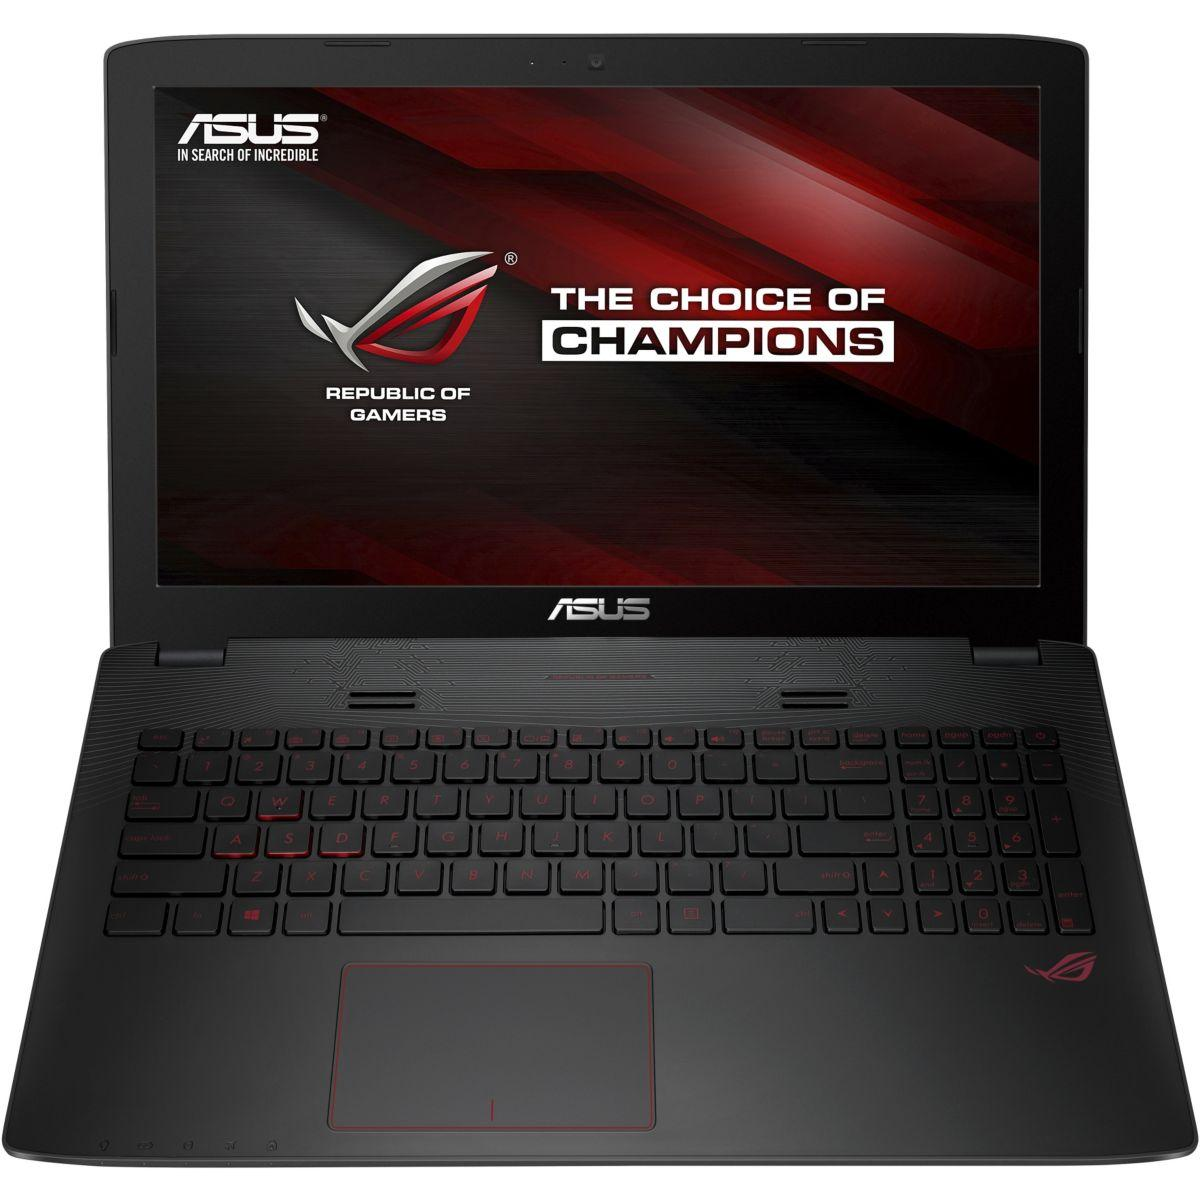 Portable asus g552vw-dm272t - la sélection webdistrib.com (photo)